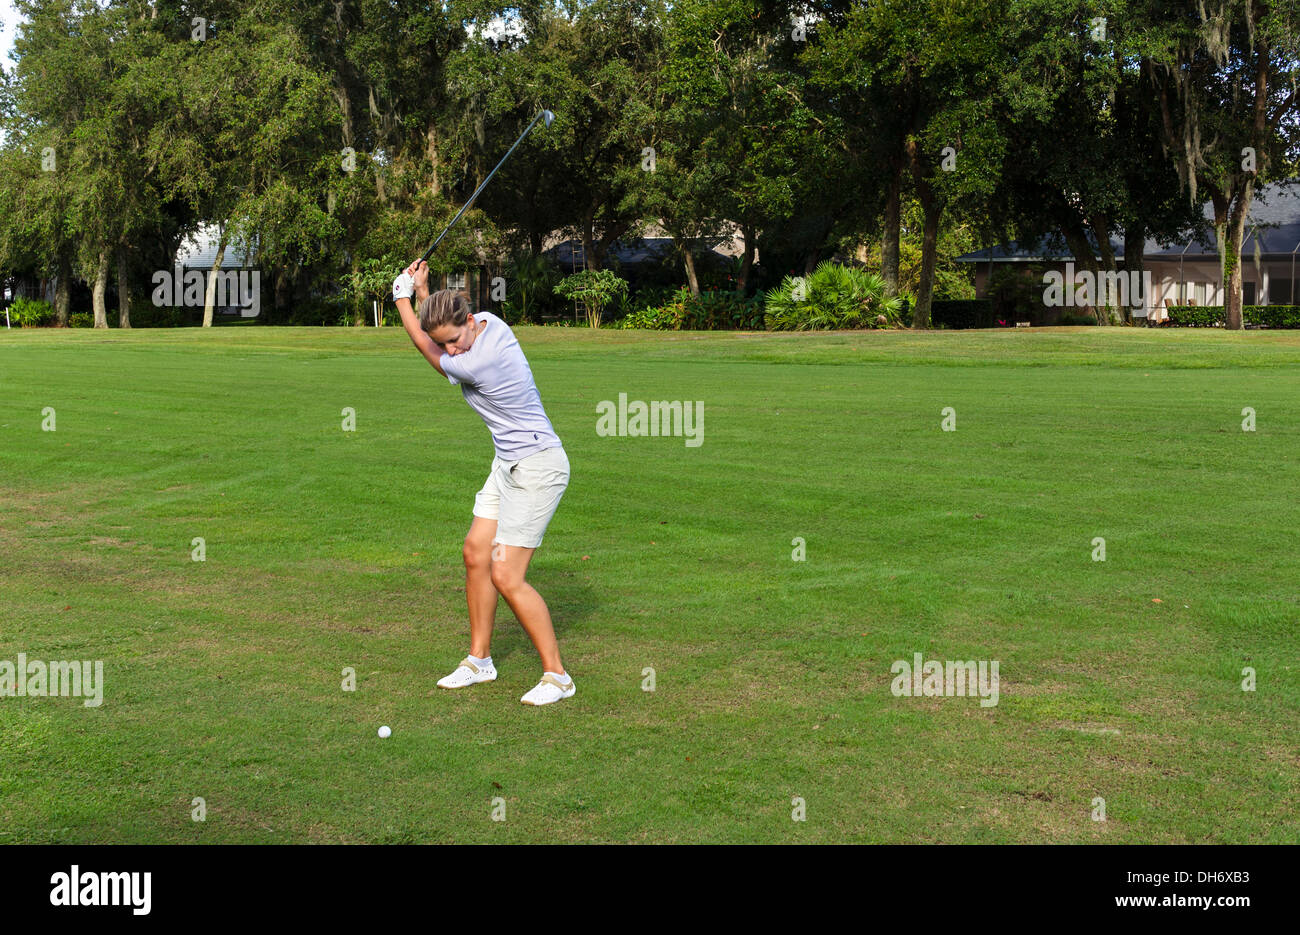 Young woman taking a shot on the fairway of a golf course at the Grenelefe Resort, Haines City, Central Florida, USA - Stock Image